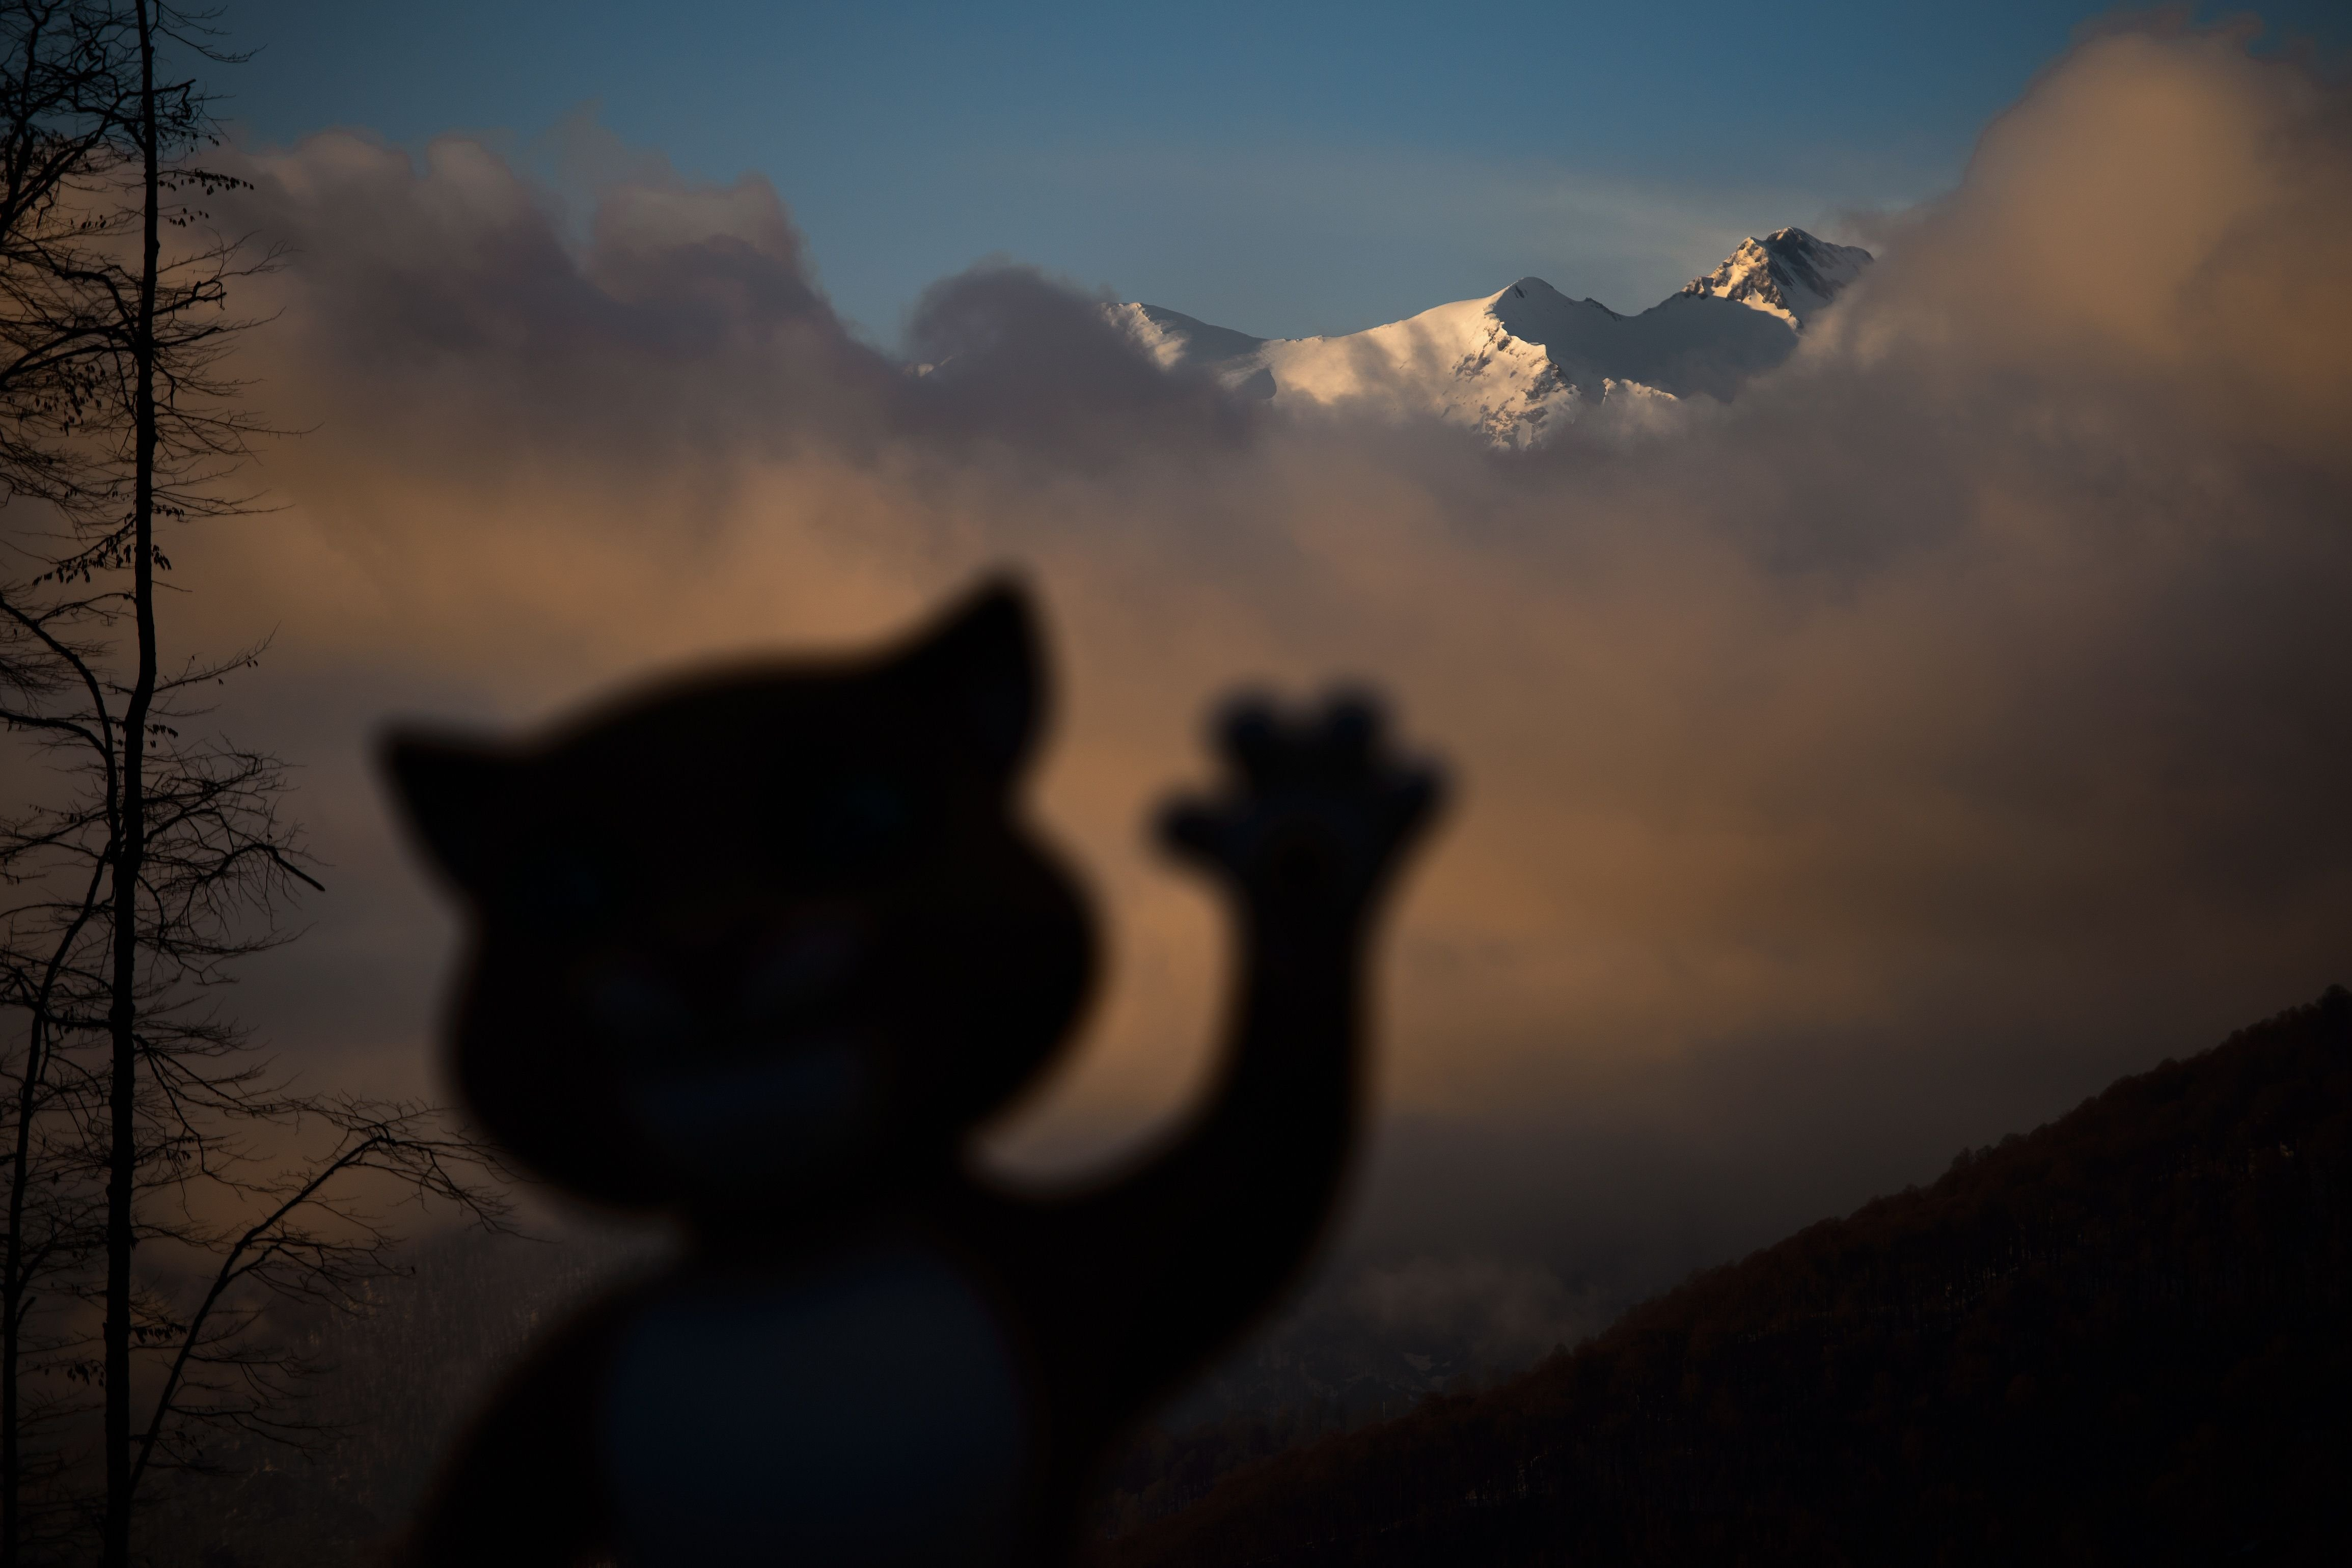 A mascot of Sochi Winter Olympics is seen in silhouette with mountains at sunset at the Mountain athletes village during the Sochi Winter Olympics on Feb.11, 2014.